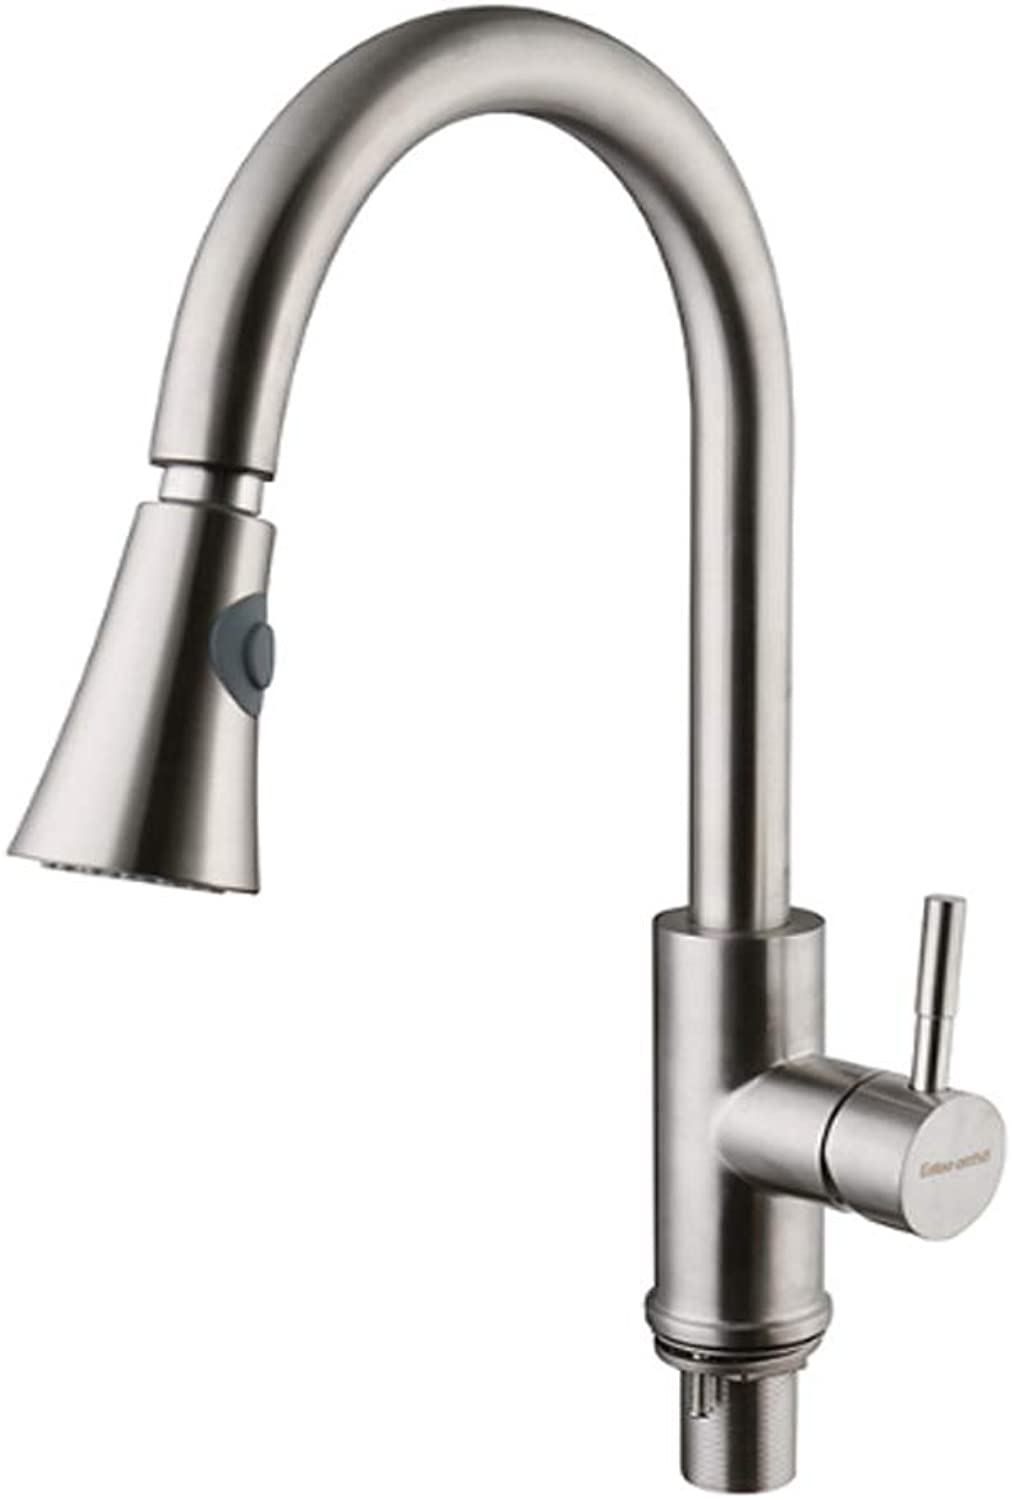 CSJD Pullable kitchen faucet, brushed hot and cold sink faucet shower single hole faucet